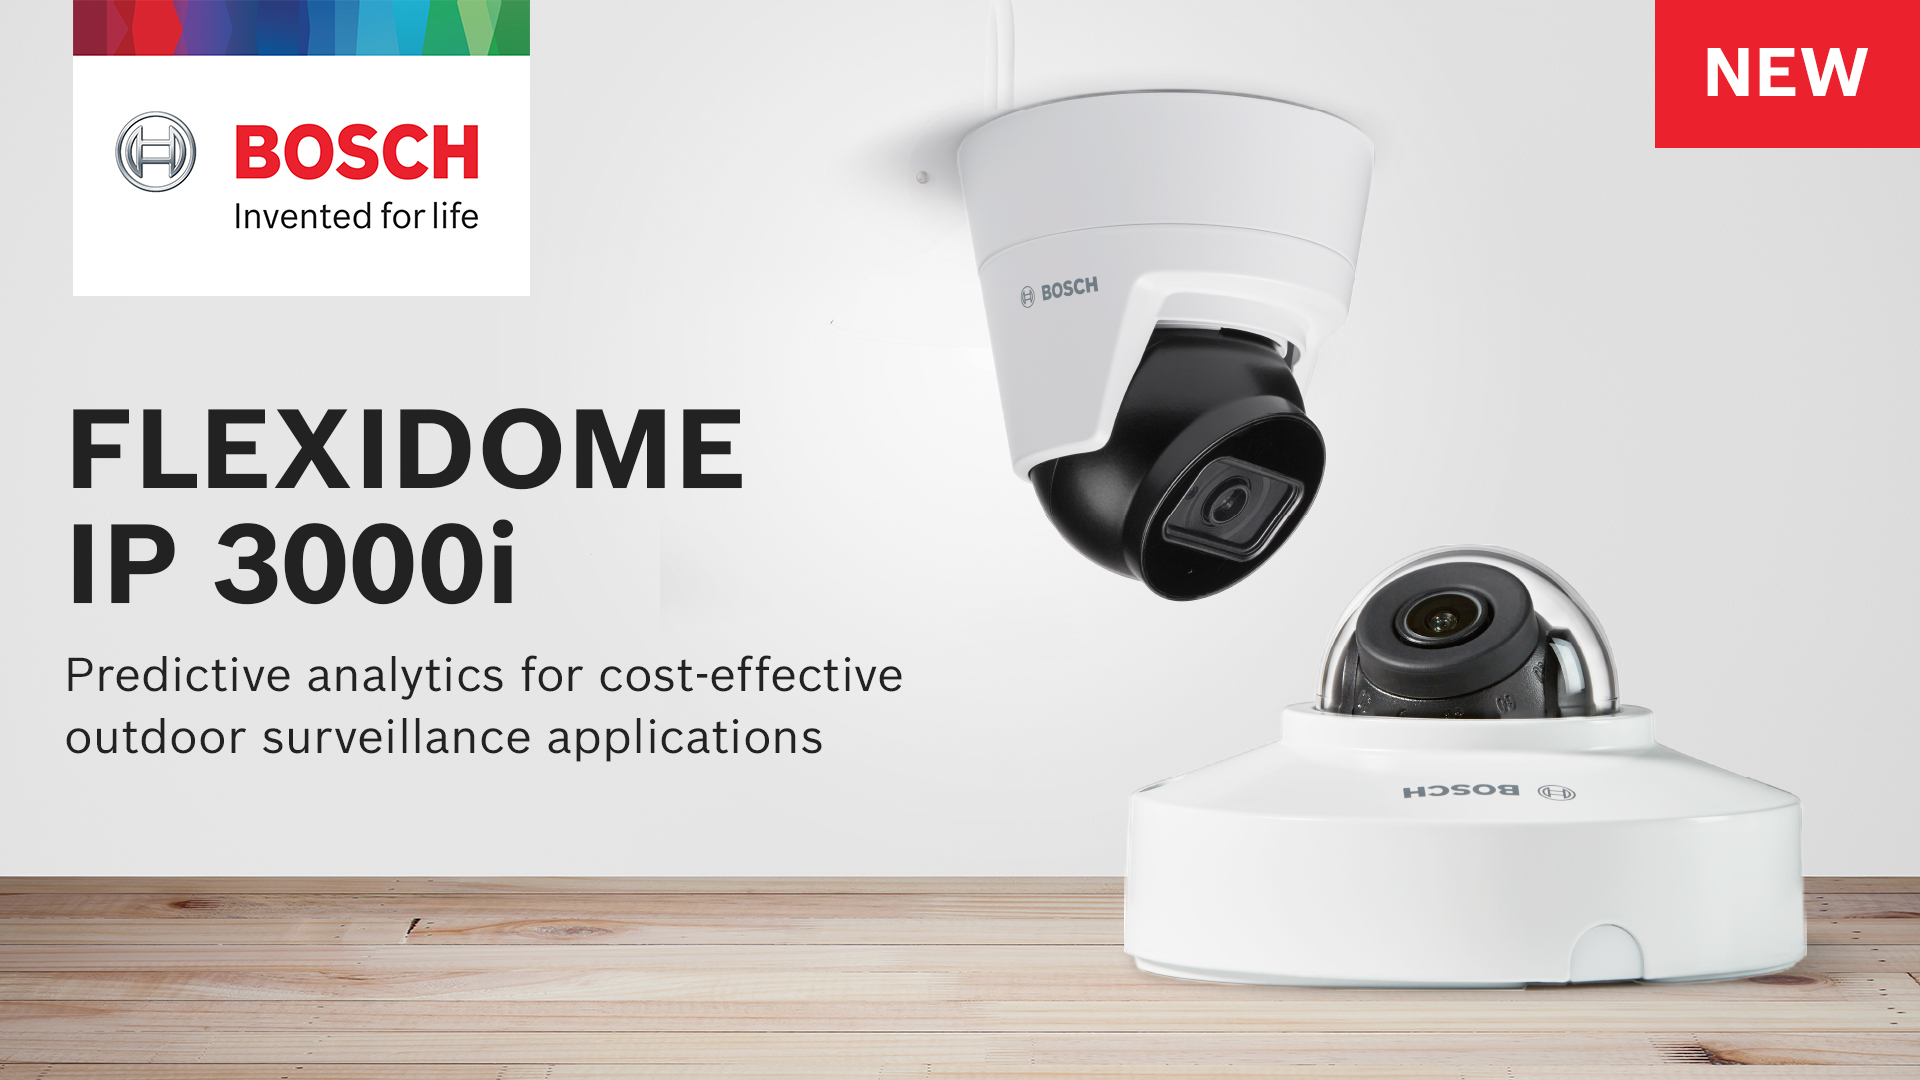 Bosch FLEXIDOME IP 3000i